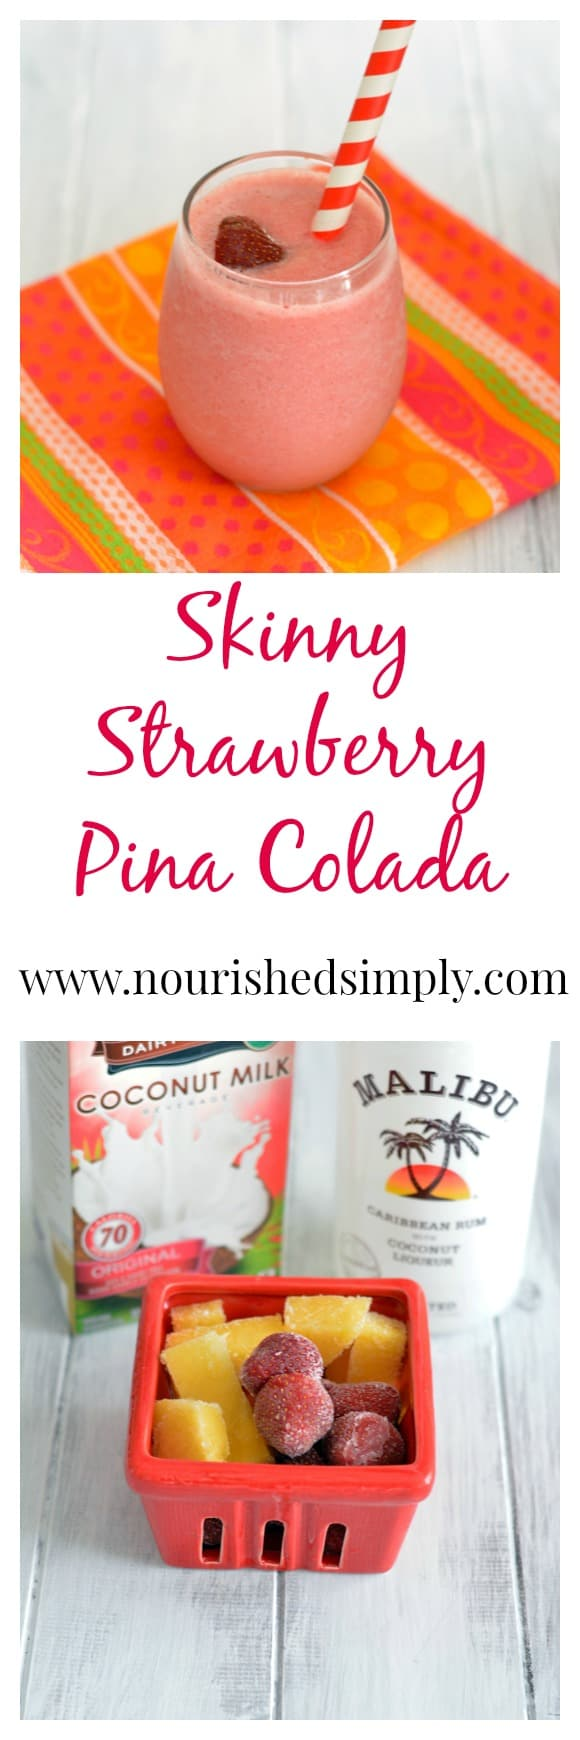 Skinny Strawberry Pina Colada is made with frozen fruit and lower sugar ingredients.